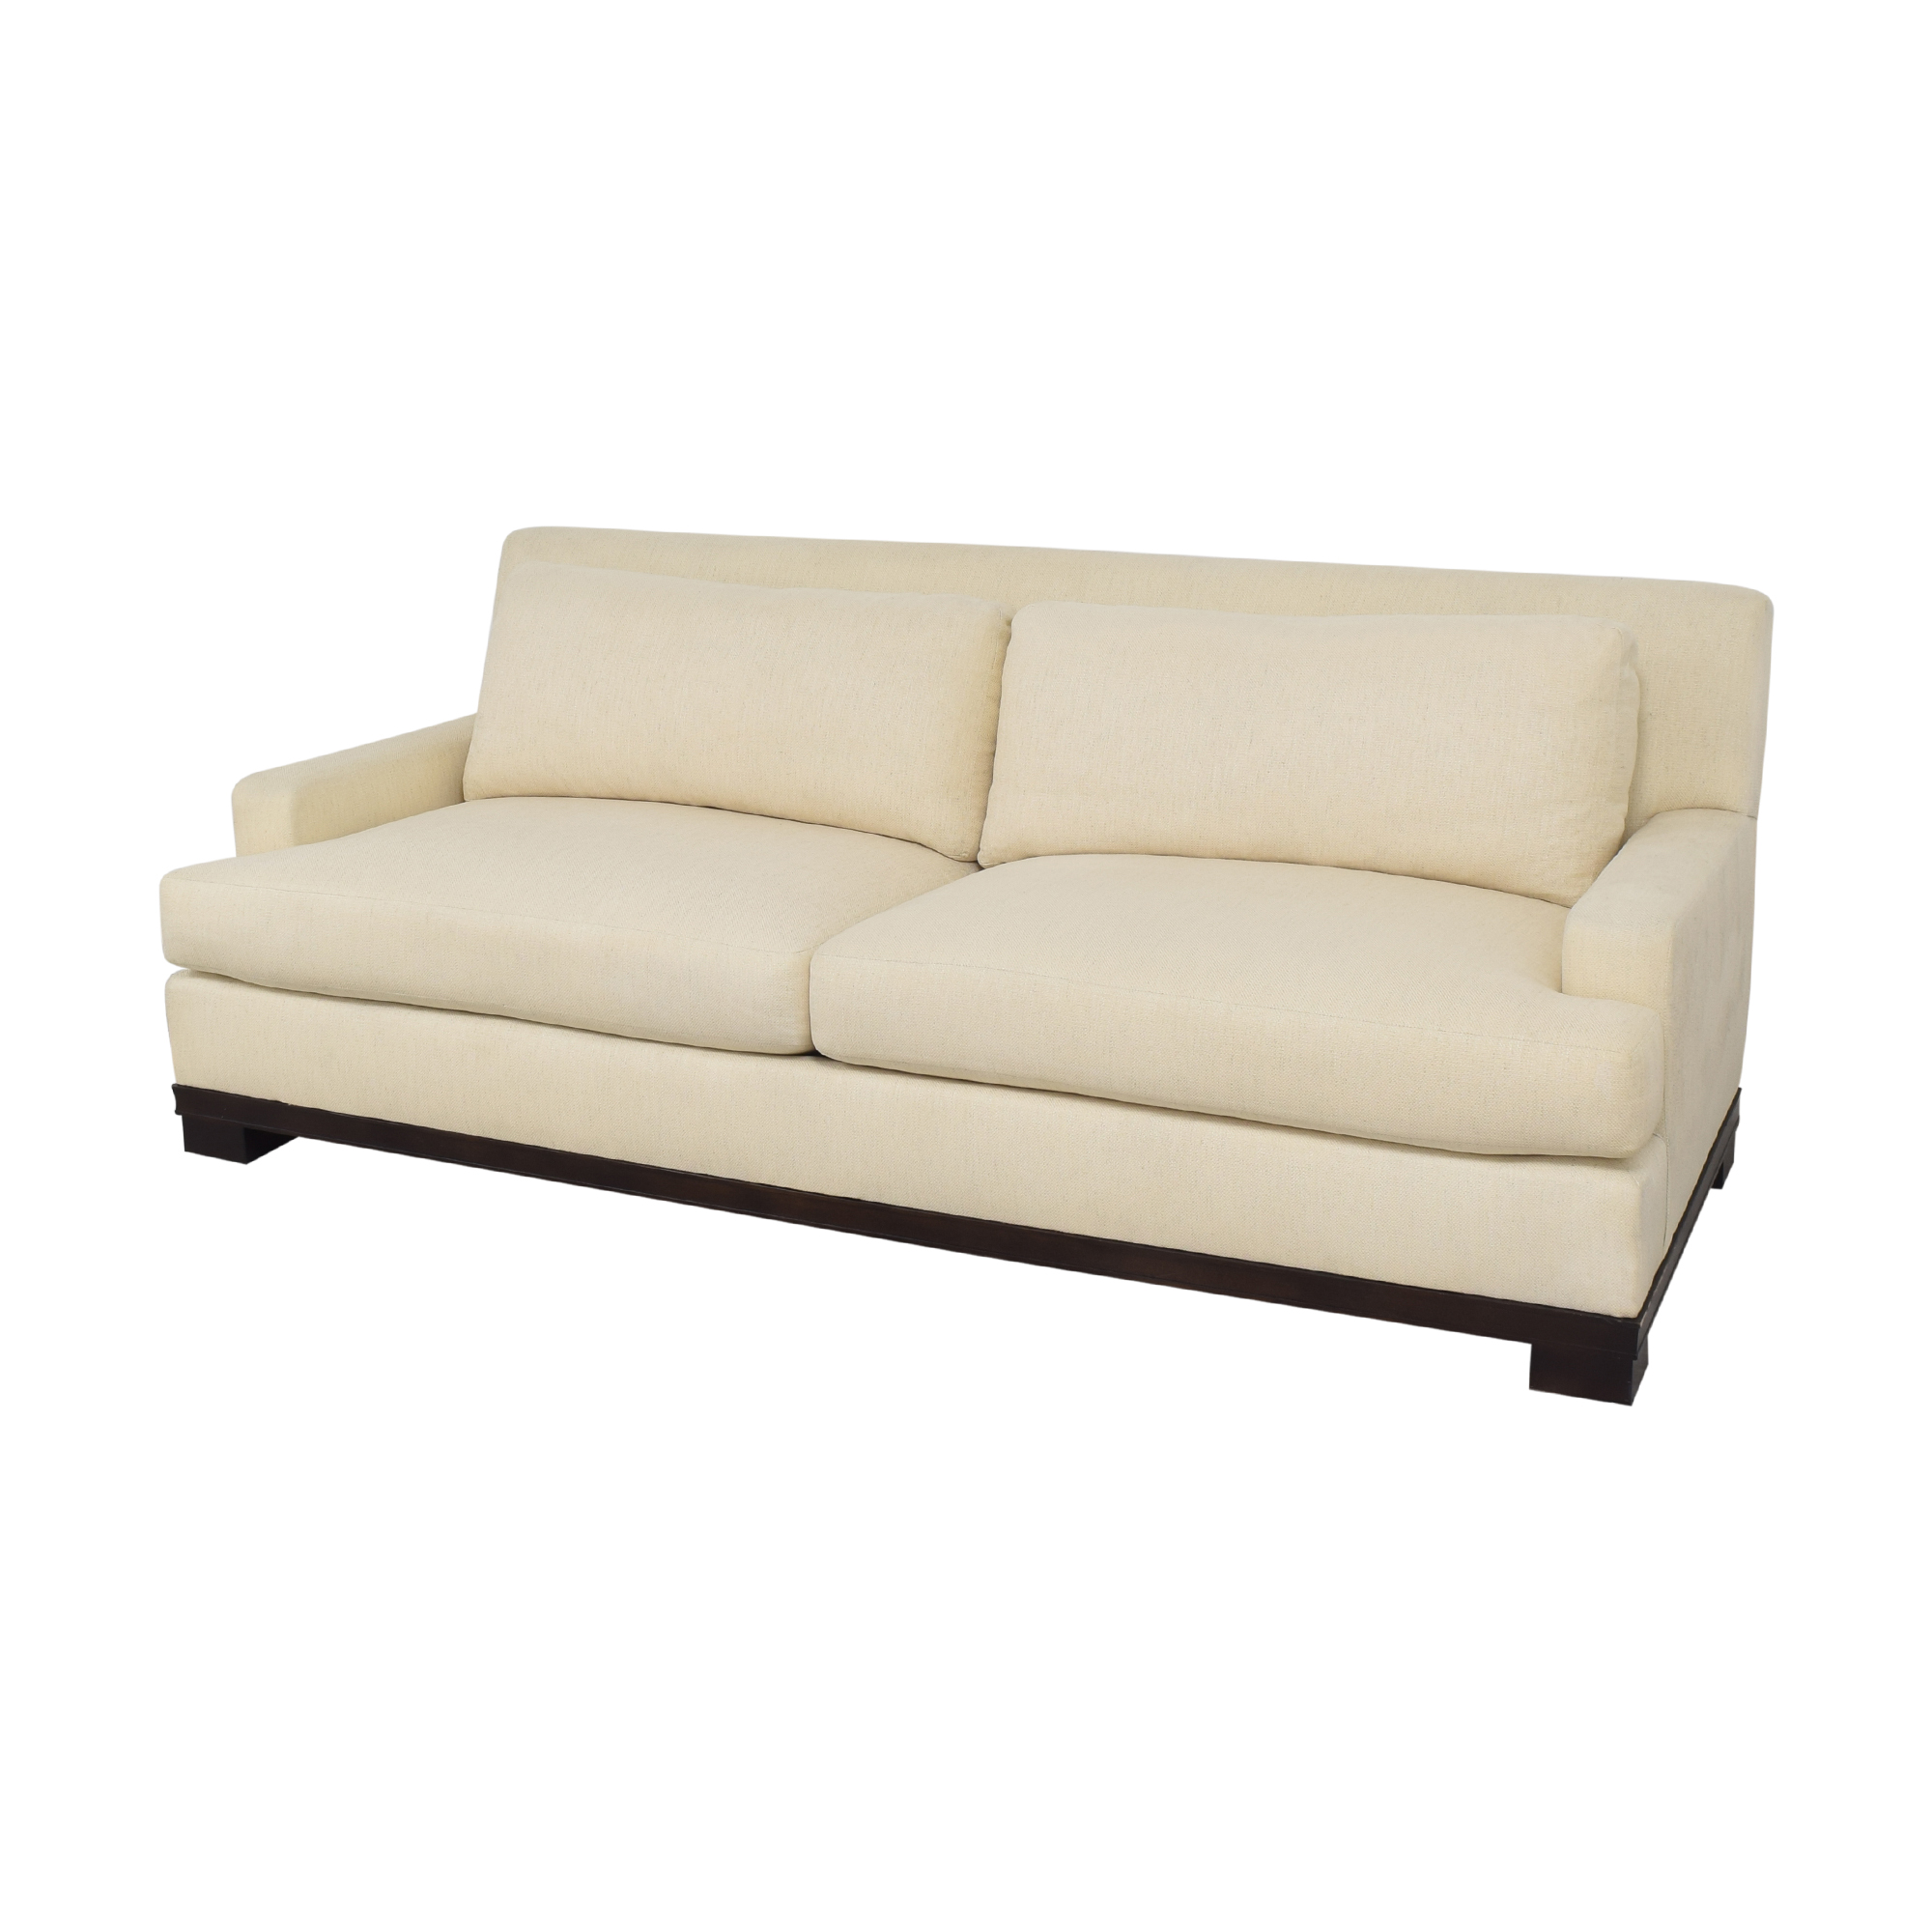 buy Bloomingdale's Bloomingdale's by Barbara Barry Oval Collection Sofa online